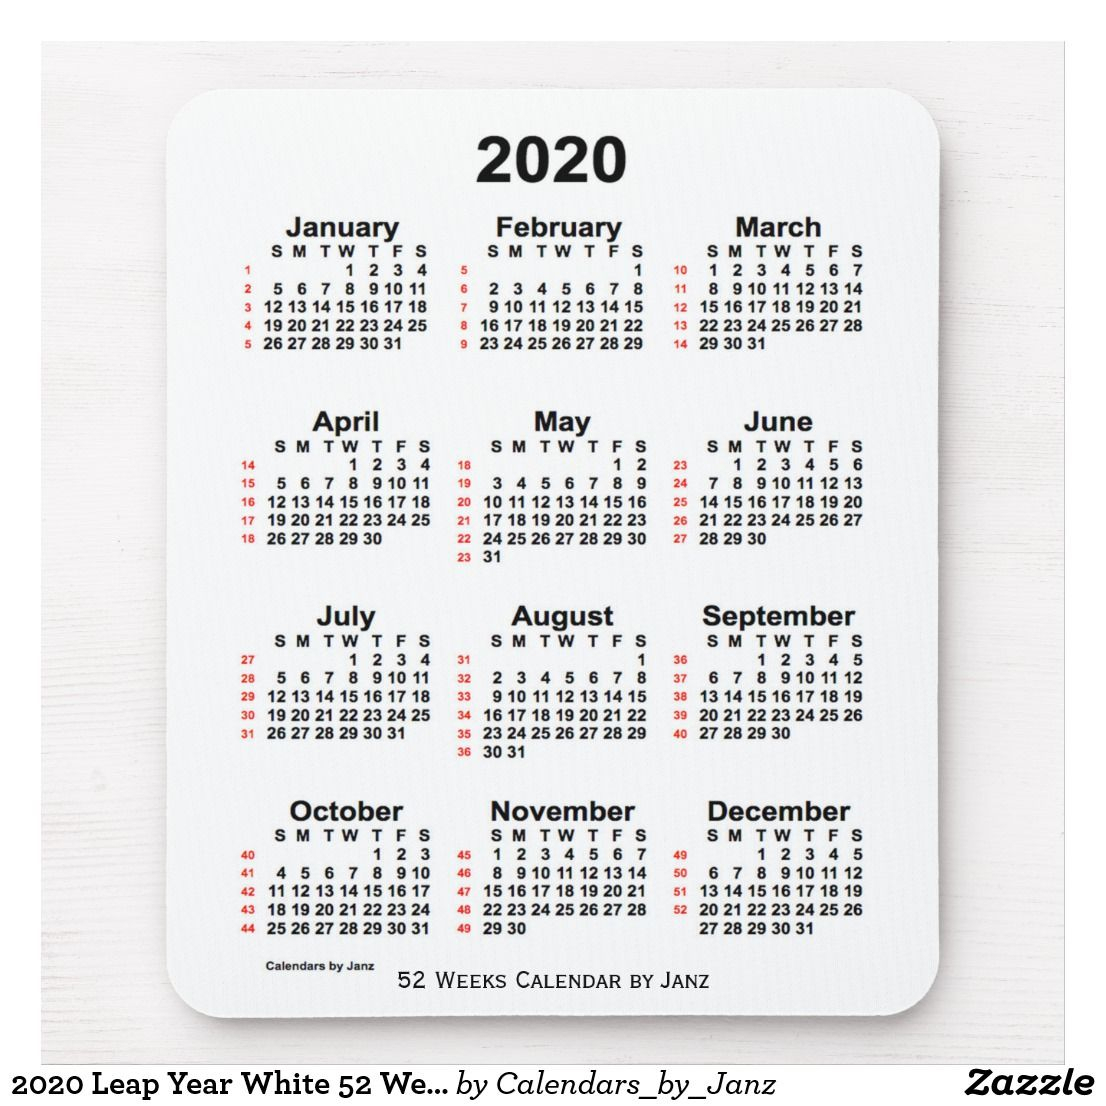 2020 Leap Year White 52 Week Calendarjanz Mouse Pad